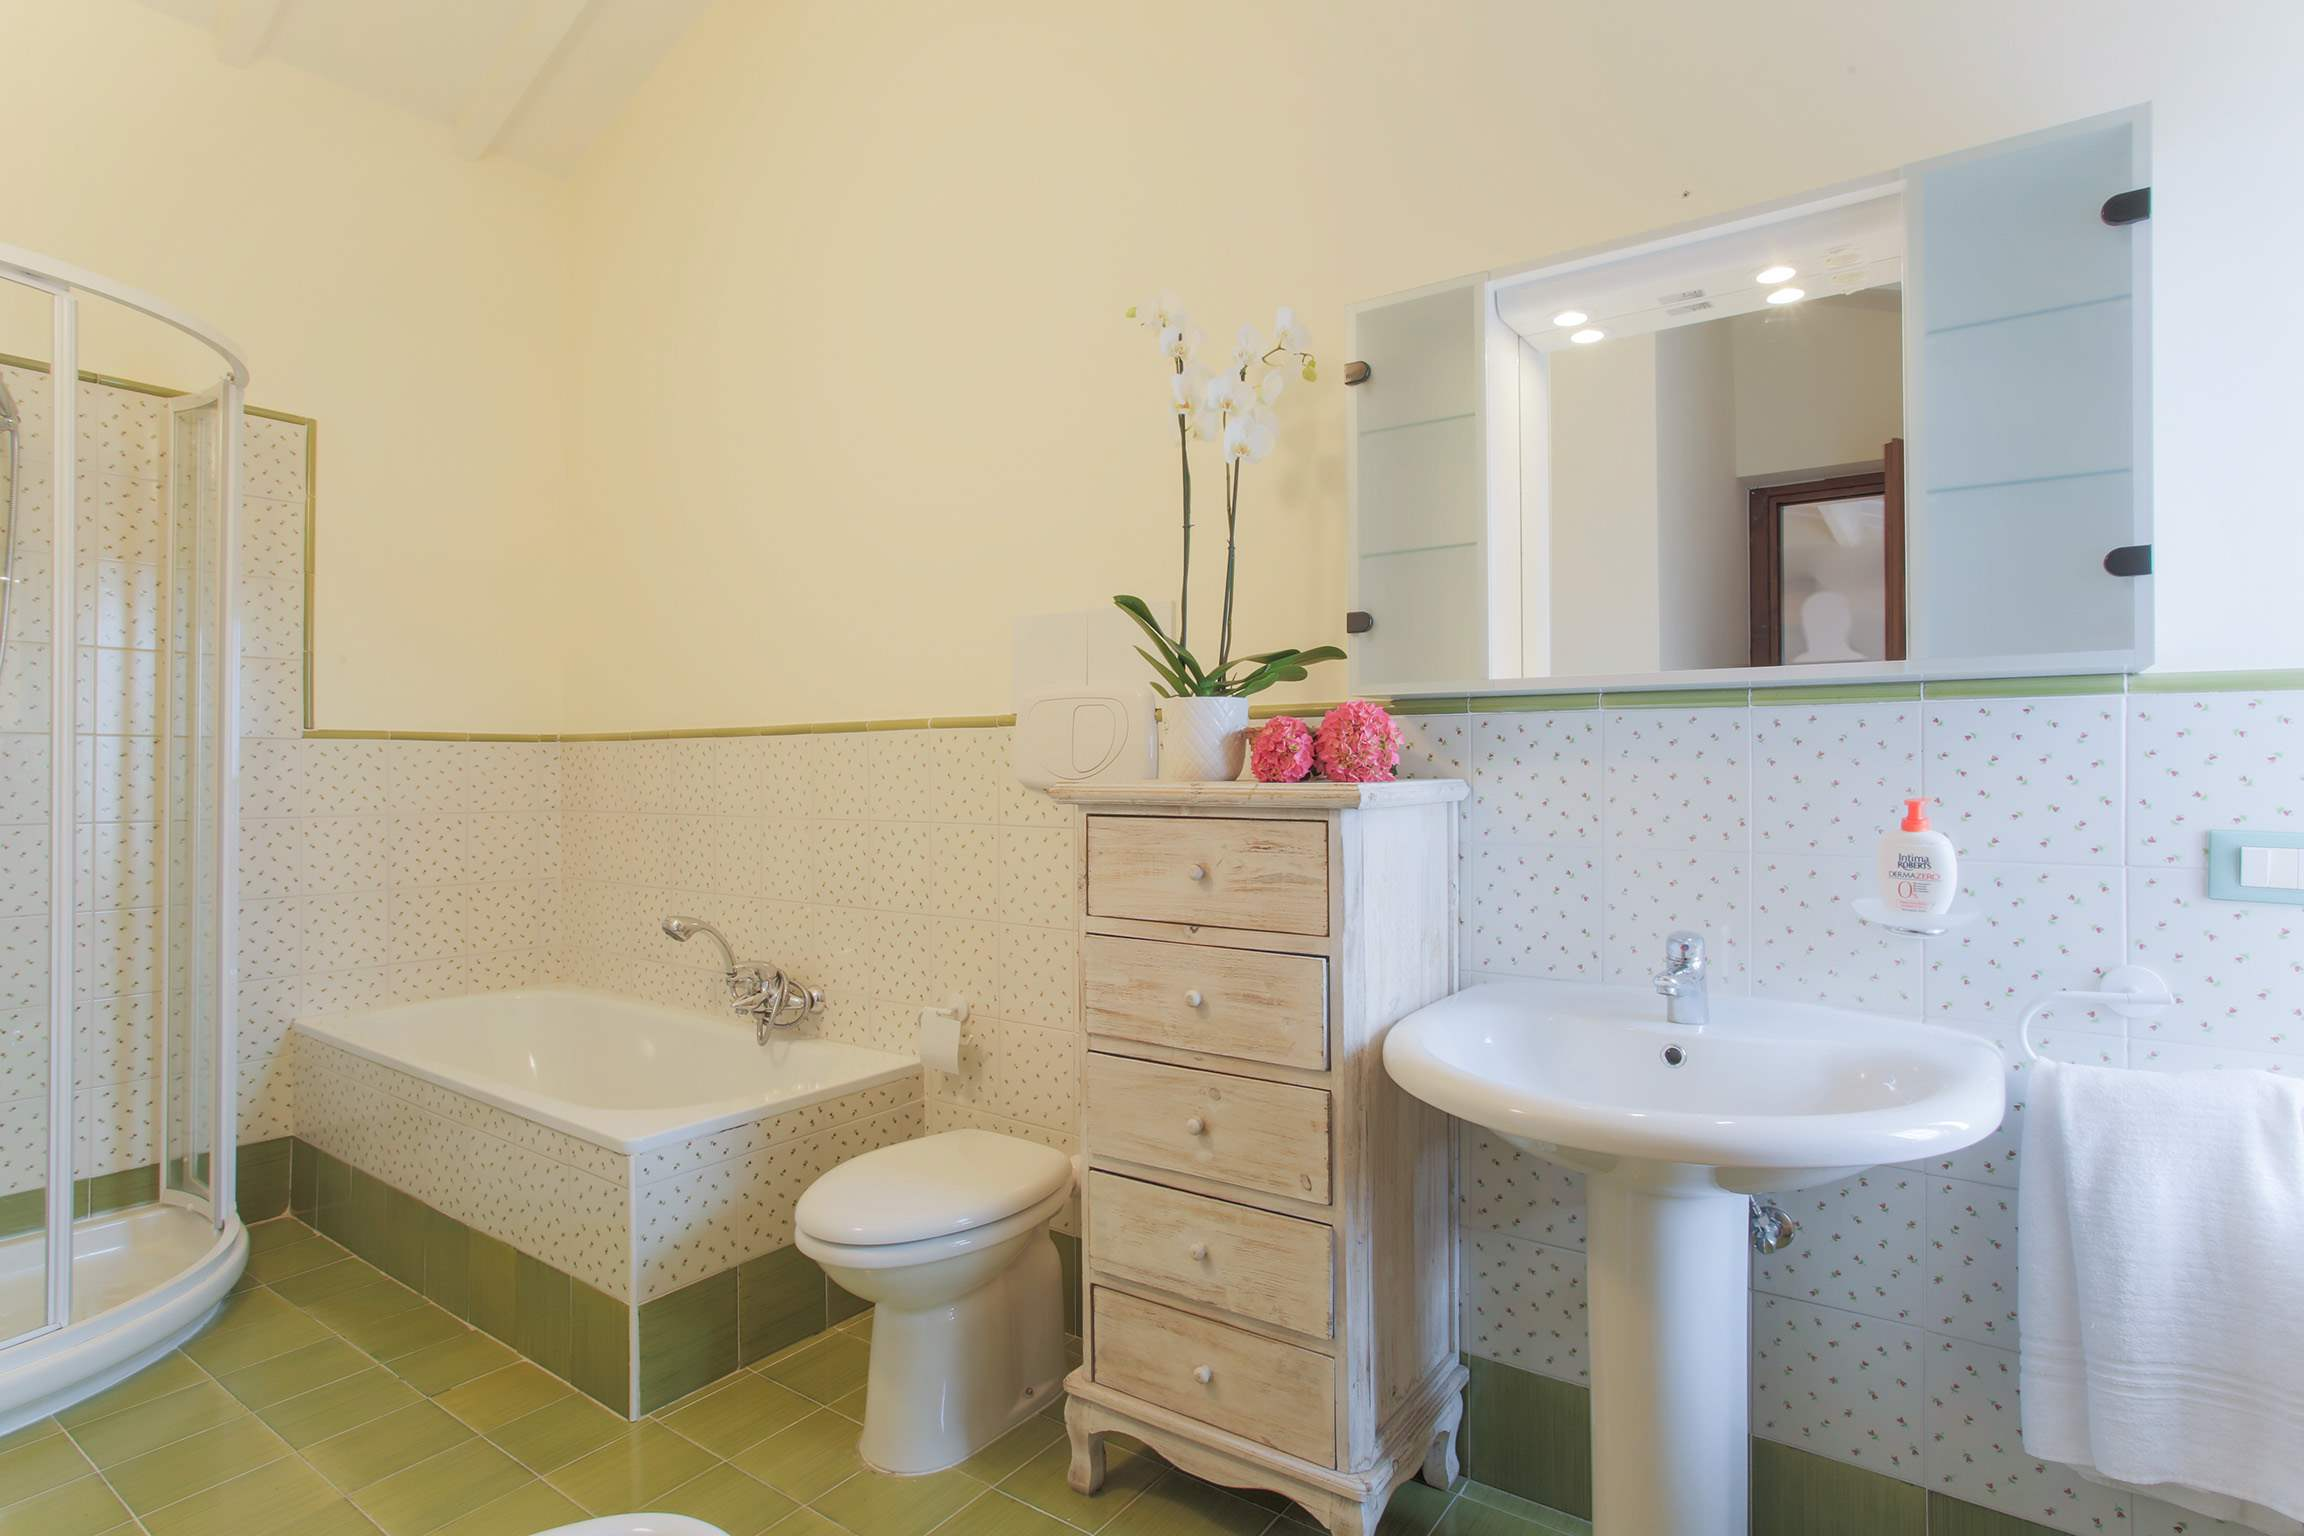 Casa Di Dante, 3 bedroom villa in North Tuscany - Pisa & Lucca Area, Tuscany Photo #21